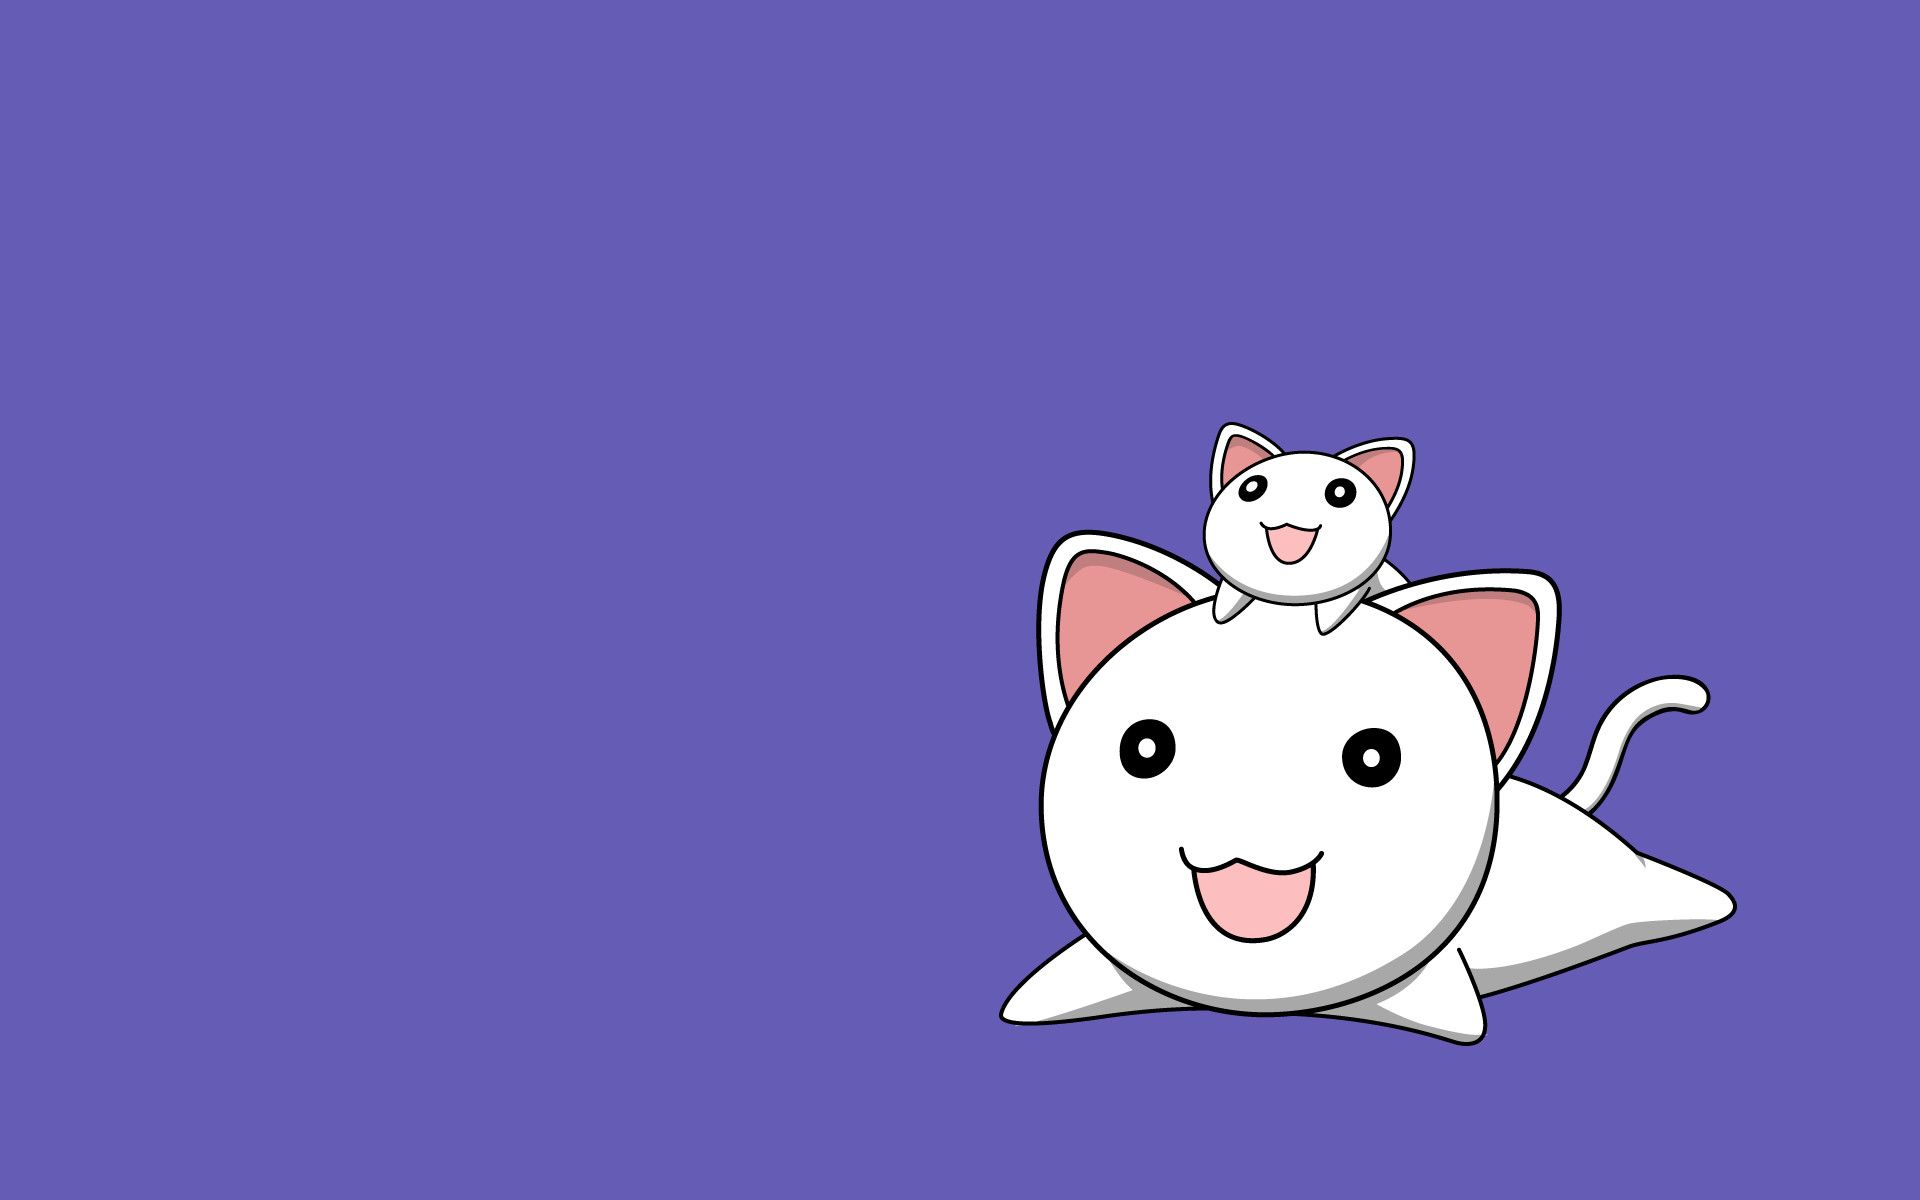 1039 Anime Wallpaper Background Photos Hd Images Cute Anime Cat Cute Cat Wallpaper Anime Cat